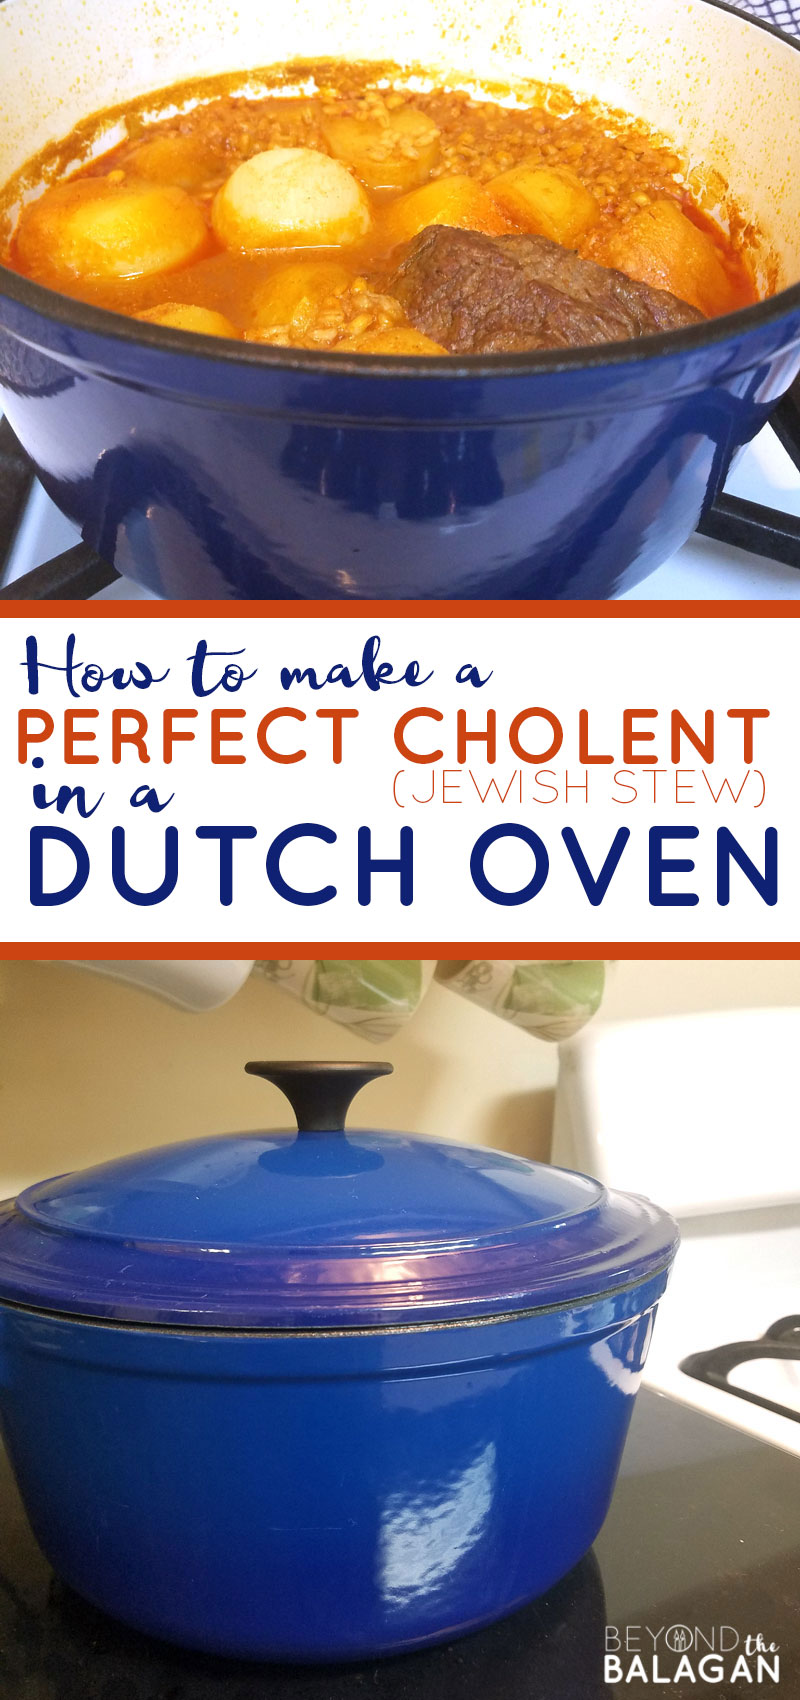 Click for the recipe that made me start loving Cholent - or Jewish slow cooked overnight stew! This is the best cholent recipe ever according to my husband. Make it in the dutch oven or in a crock pot or regular pot - but a le creuset dutch oven is best #jewish #cholent #recipe #jewishcuisine #jewishcooking #kosher #kosherrecipe